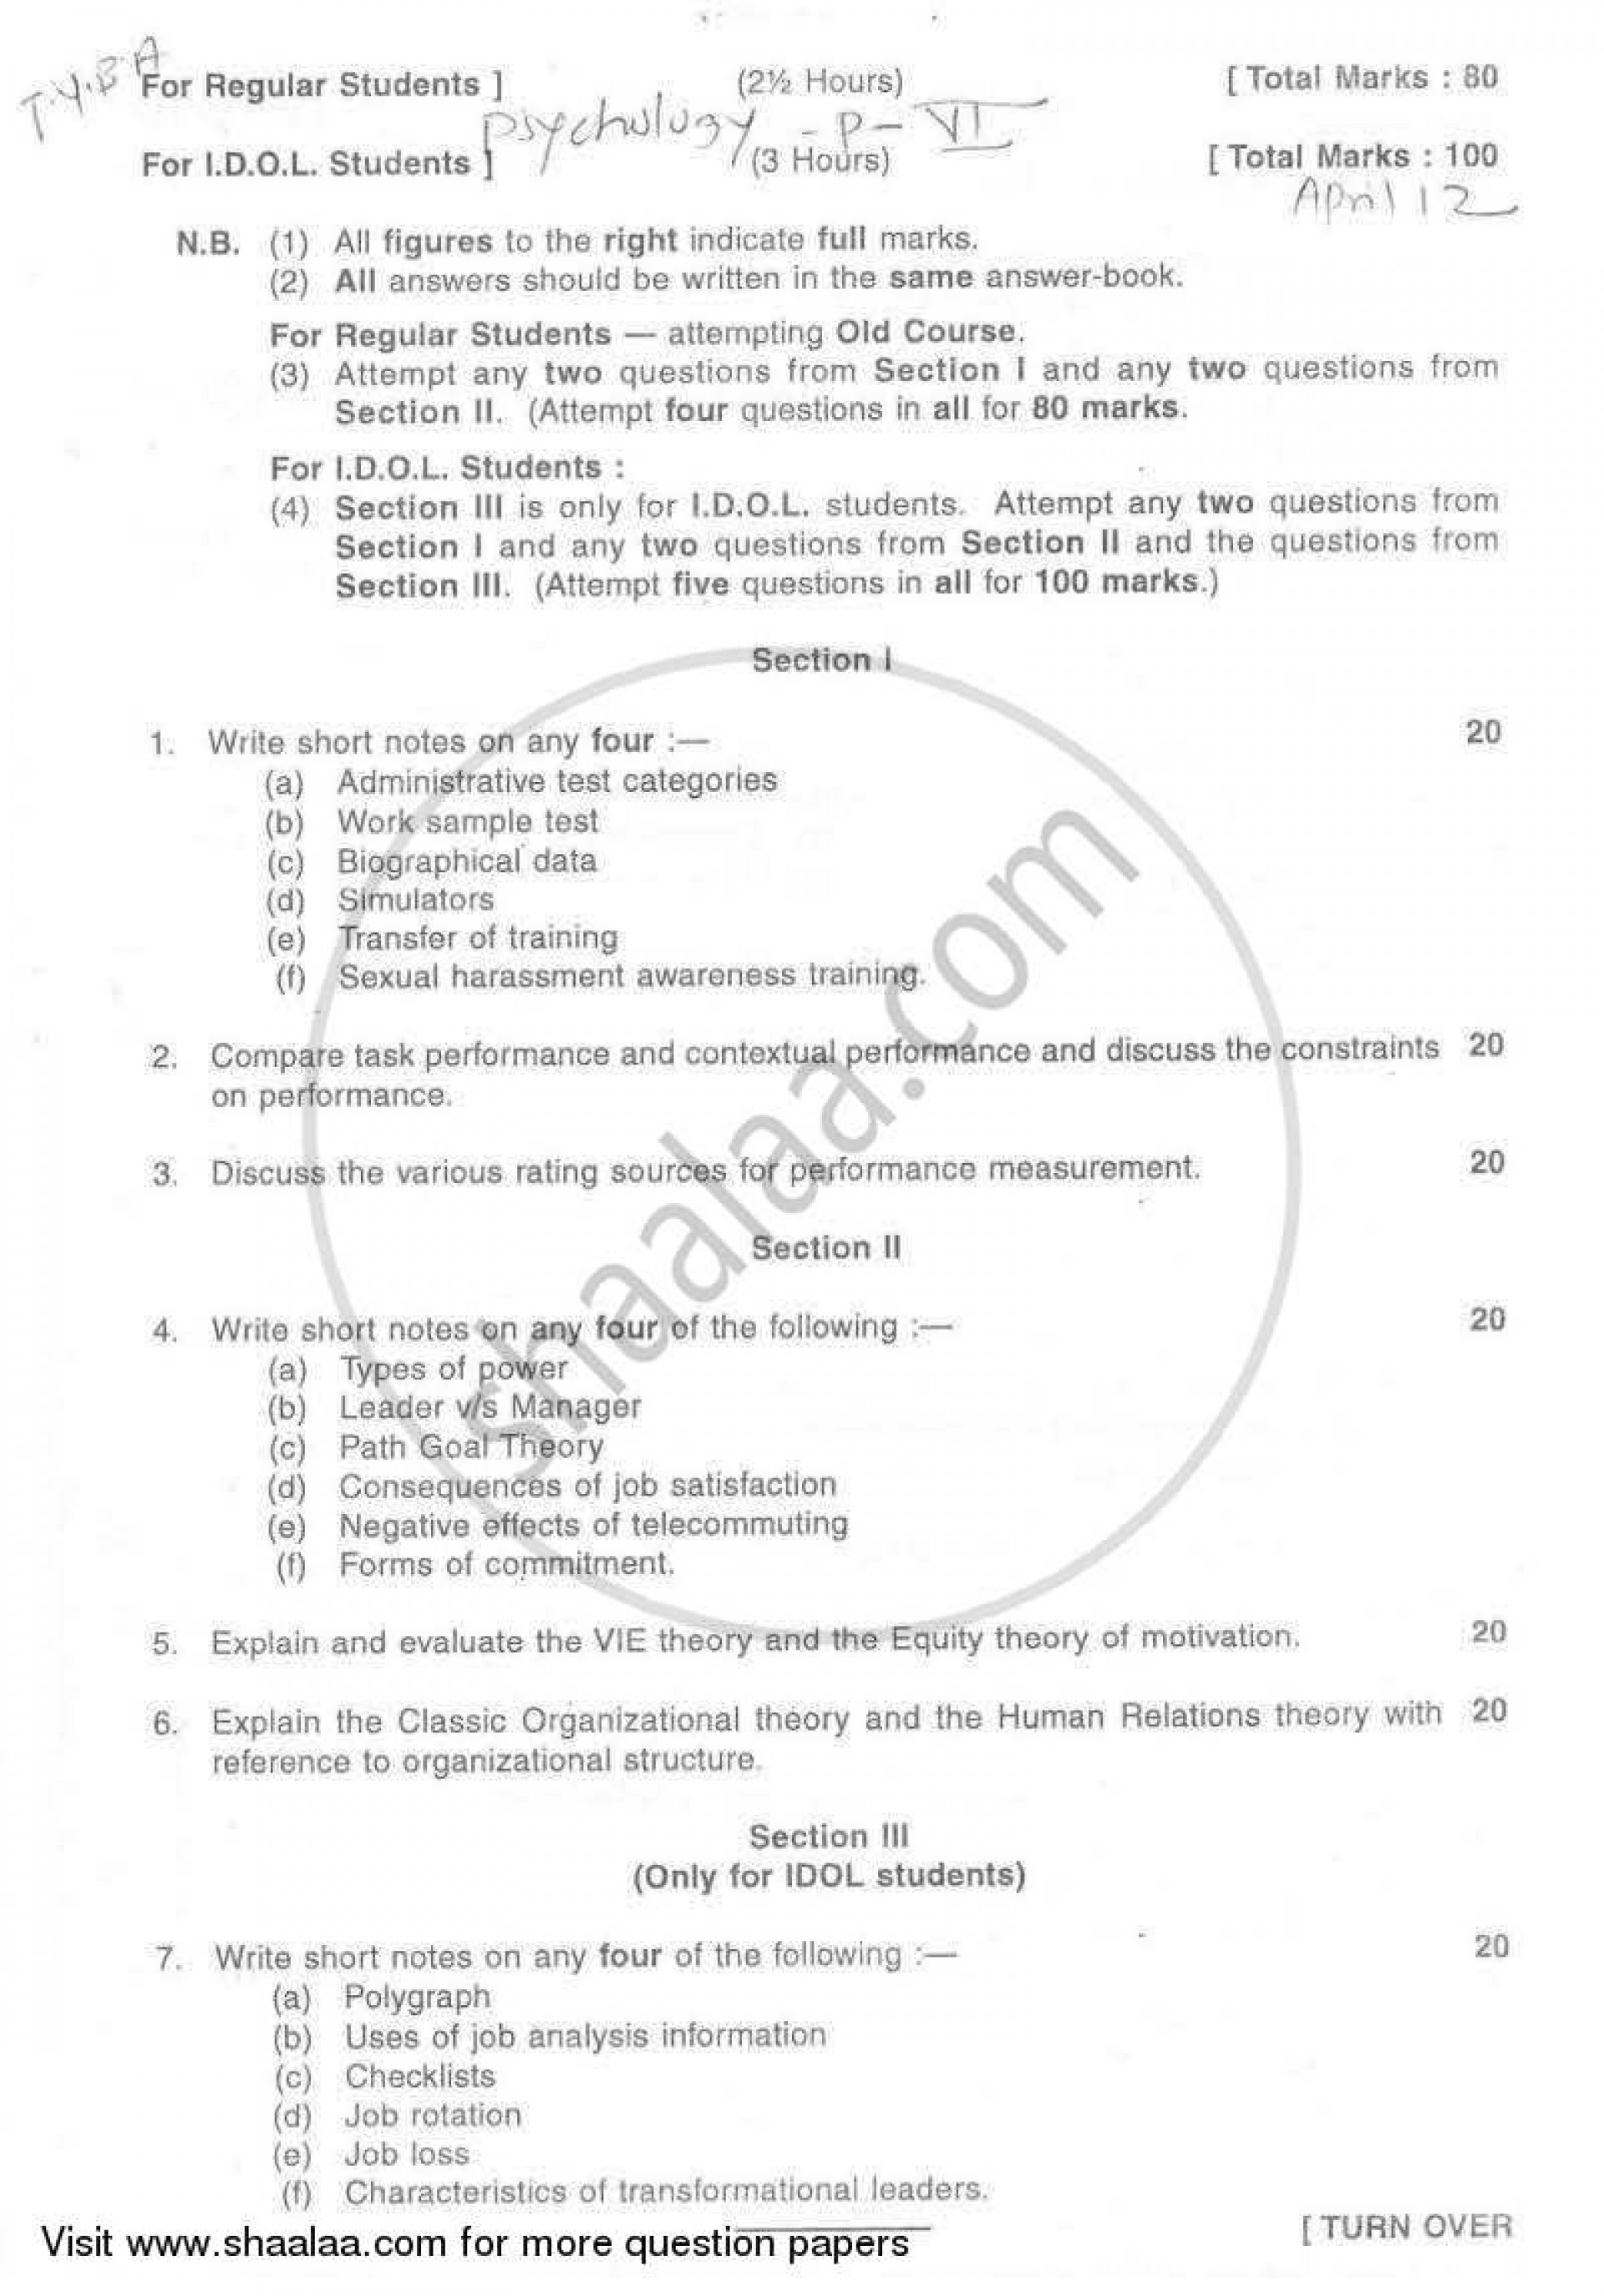 017 Psychologyearch Paper On Dreams University Of Mumbai Bachelor Industrial Organizational T Y Yearly Pattern Semester Tyba 2011 29a03925dfc524f2aa4cb10e4d3da996a Singular Psychology Research Articles 1920